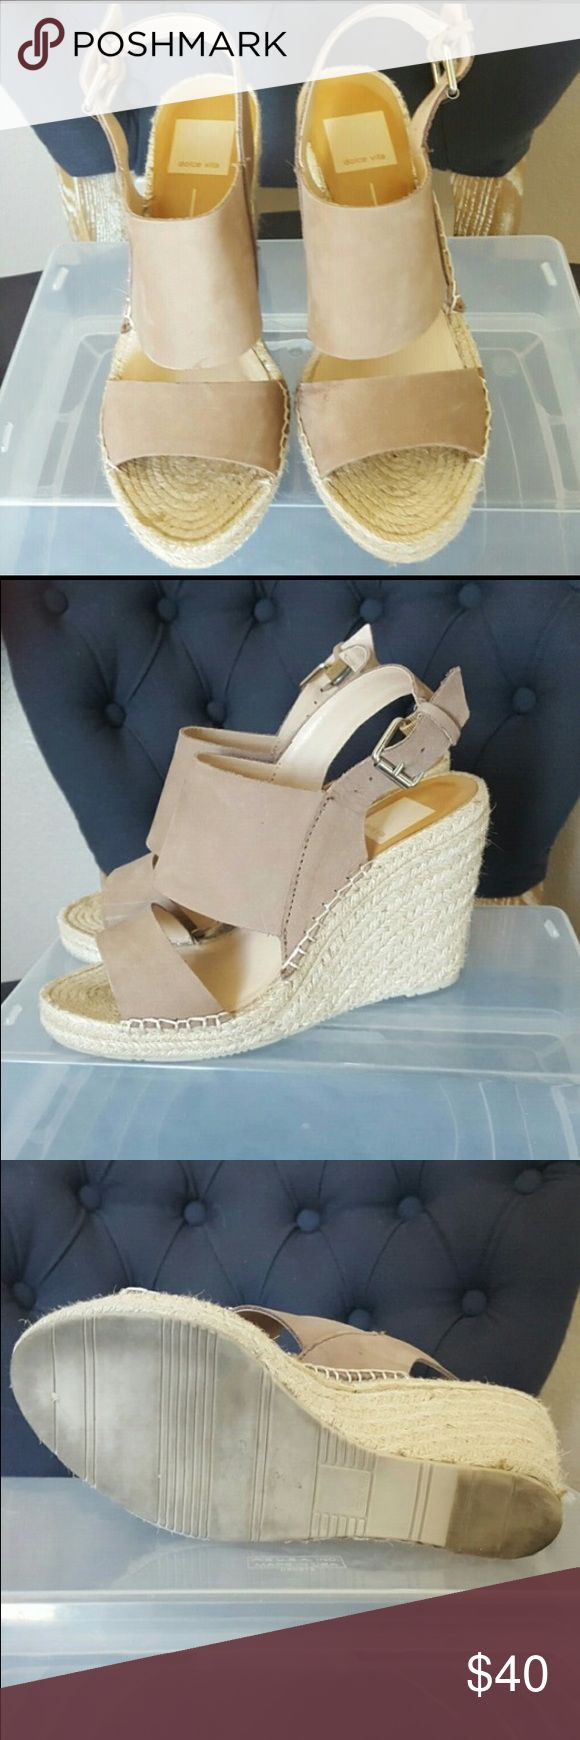 Dolce Vita Nude Espadrille Wedges -Size 7 Gently worn super cute wedges that go with almost anything! Very comfortable. Size 7. Nude leather. Make an offer! Dolce Vita Shoes Wedges